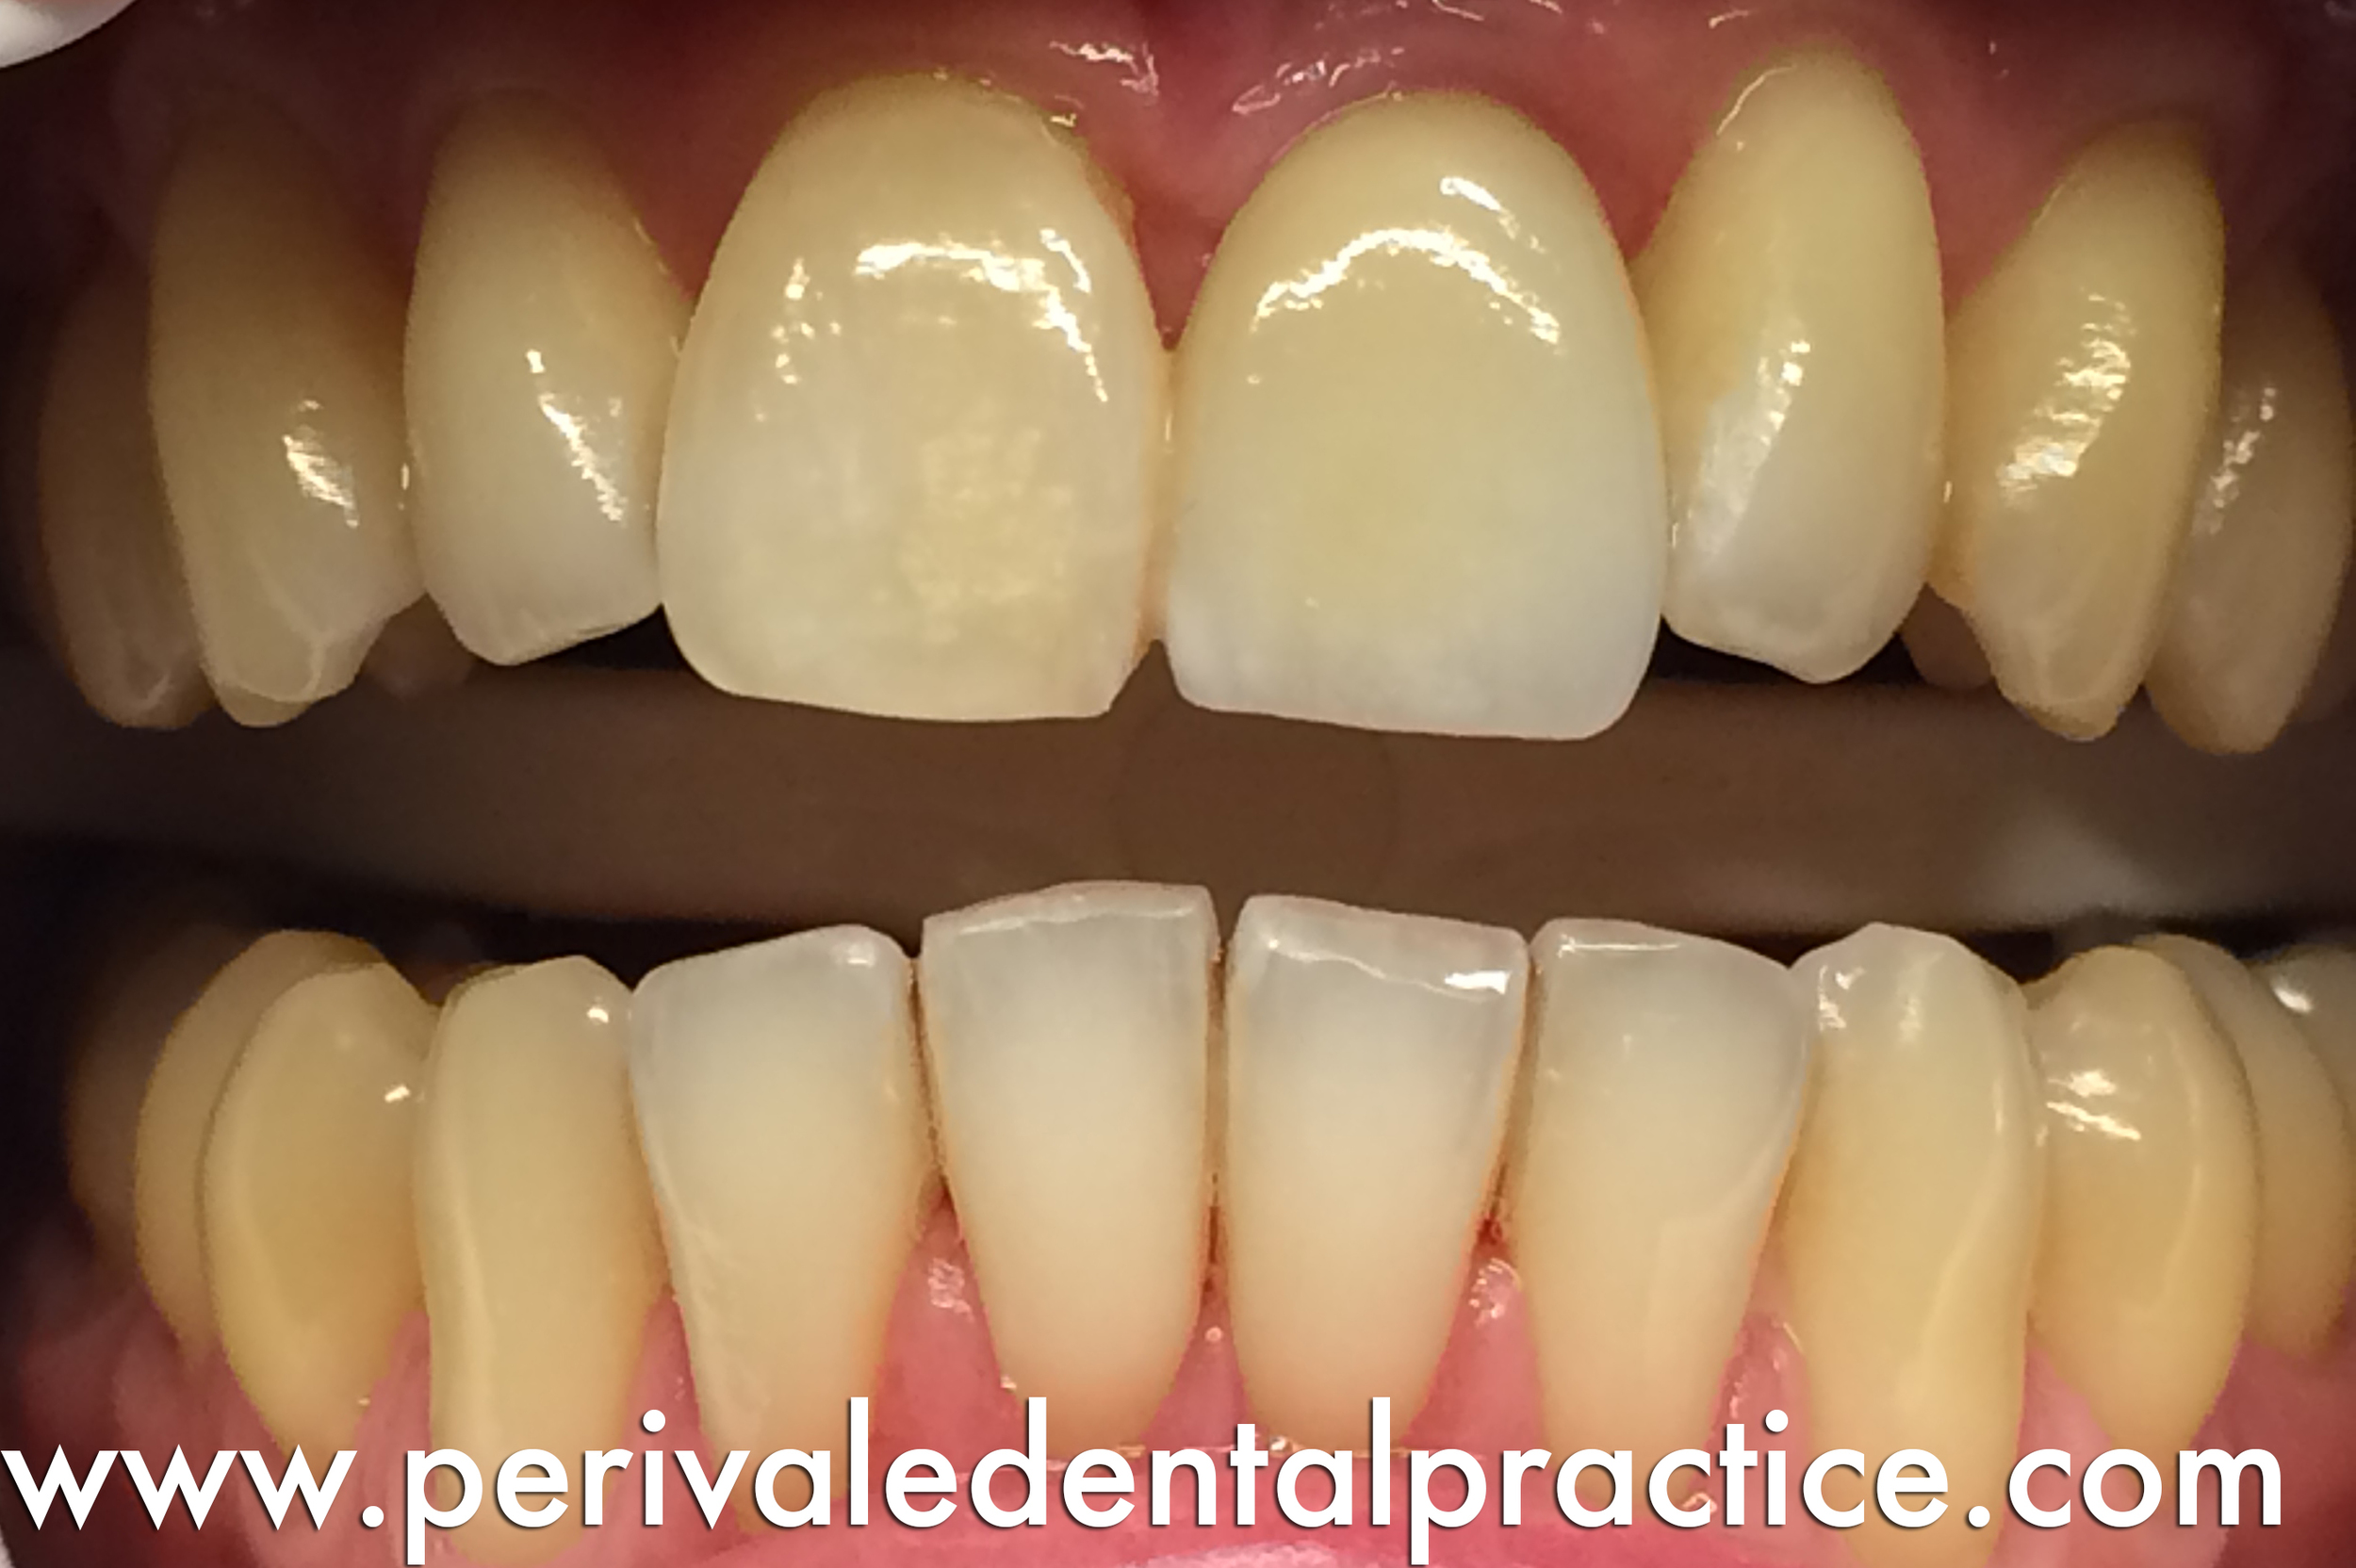 After treatment: Dental Implant placed